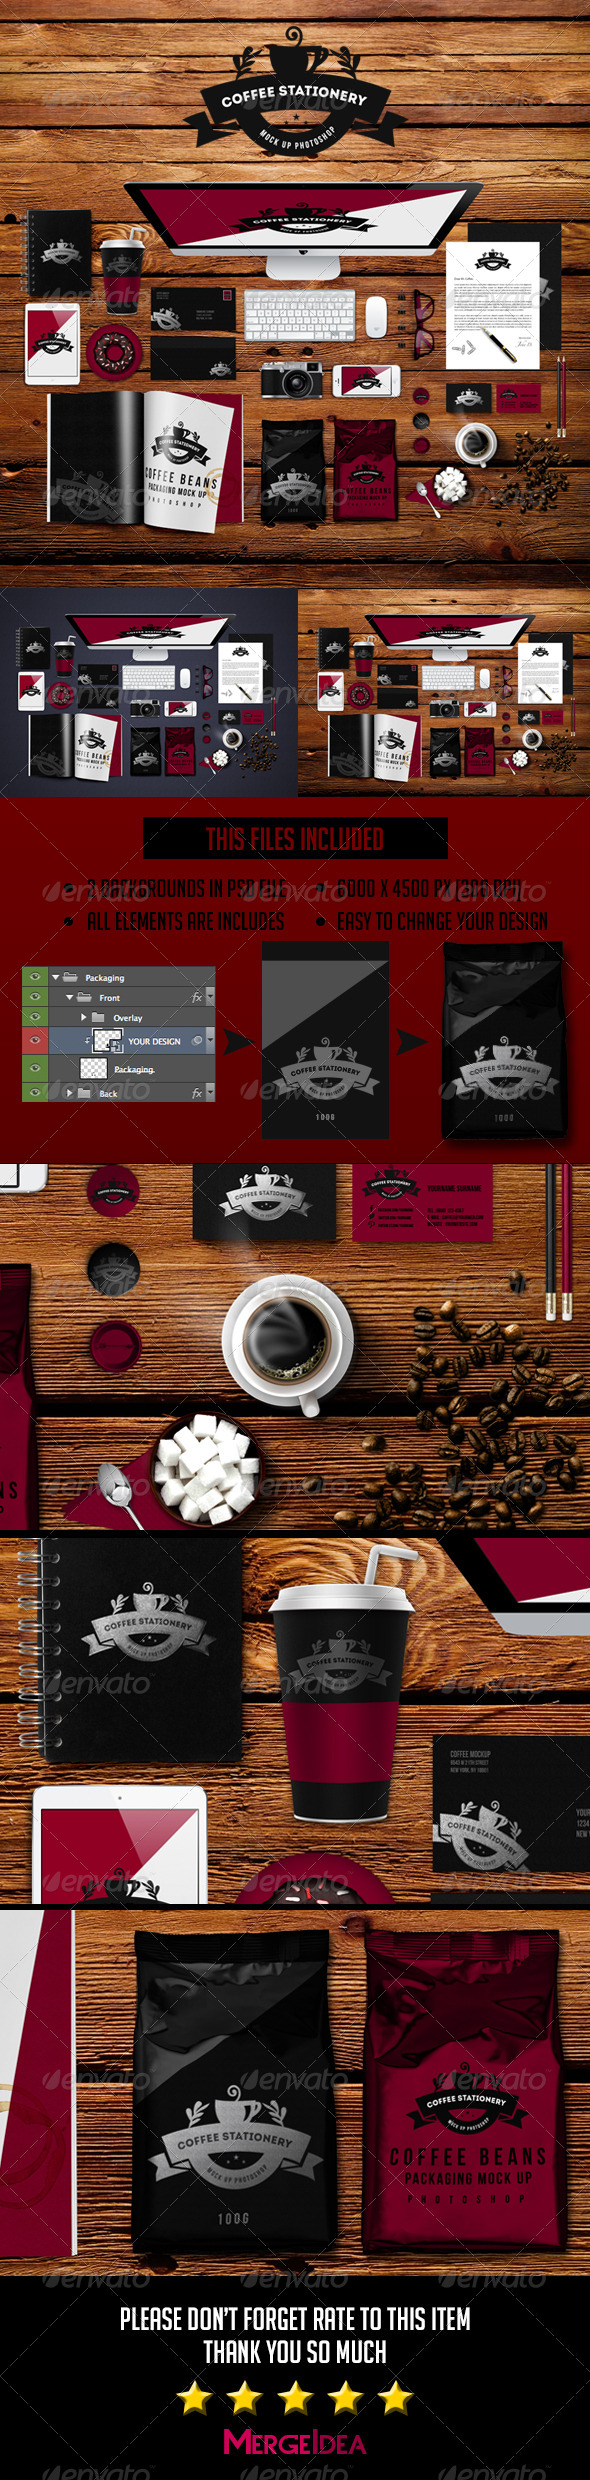 GraphicRiver Coffee Stationery Mockup 8119885